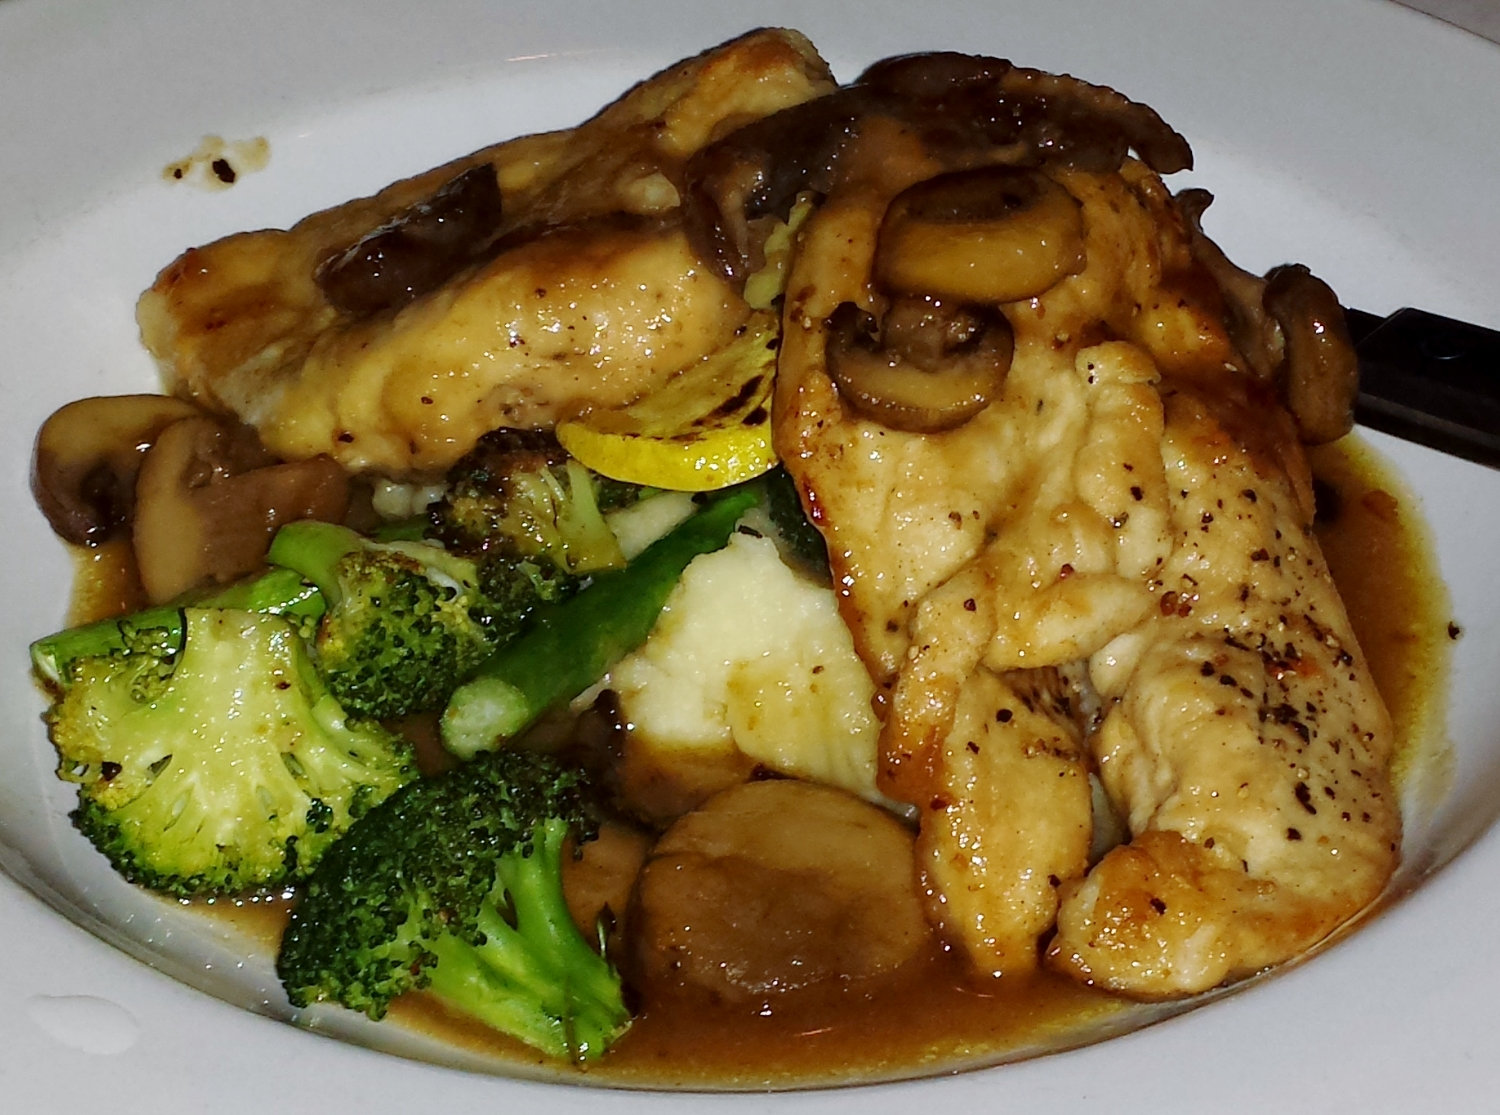 Free Bird Chicken Marsala is made with FreeBird chicken breasts, and plenty of mushrooms, served over organic mashed potatoes and vegetables.